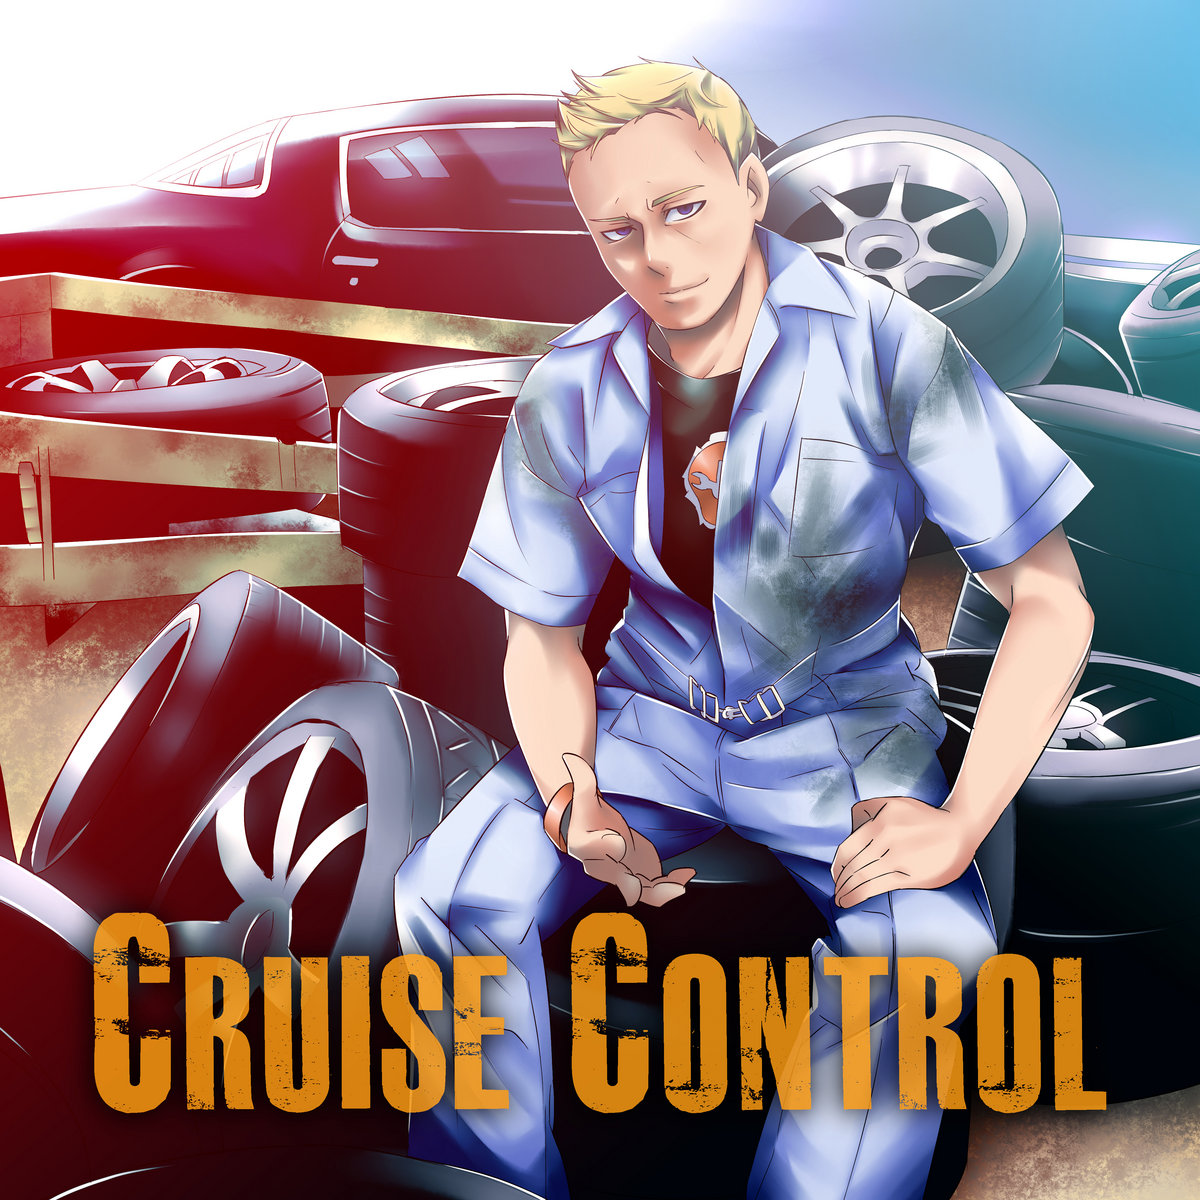 Cruise Control (Co Prod. Kannix) by Reverse Mechanic